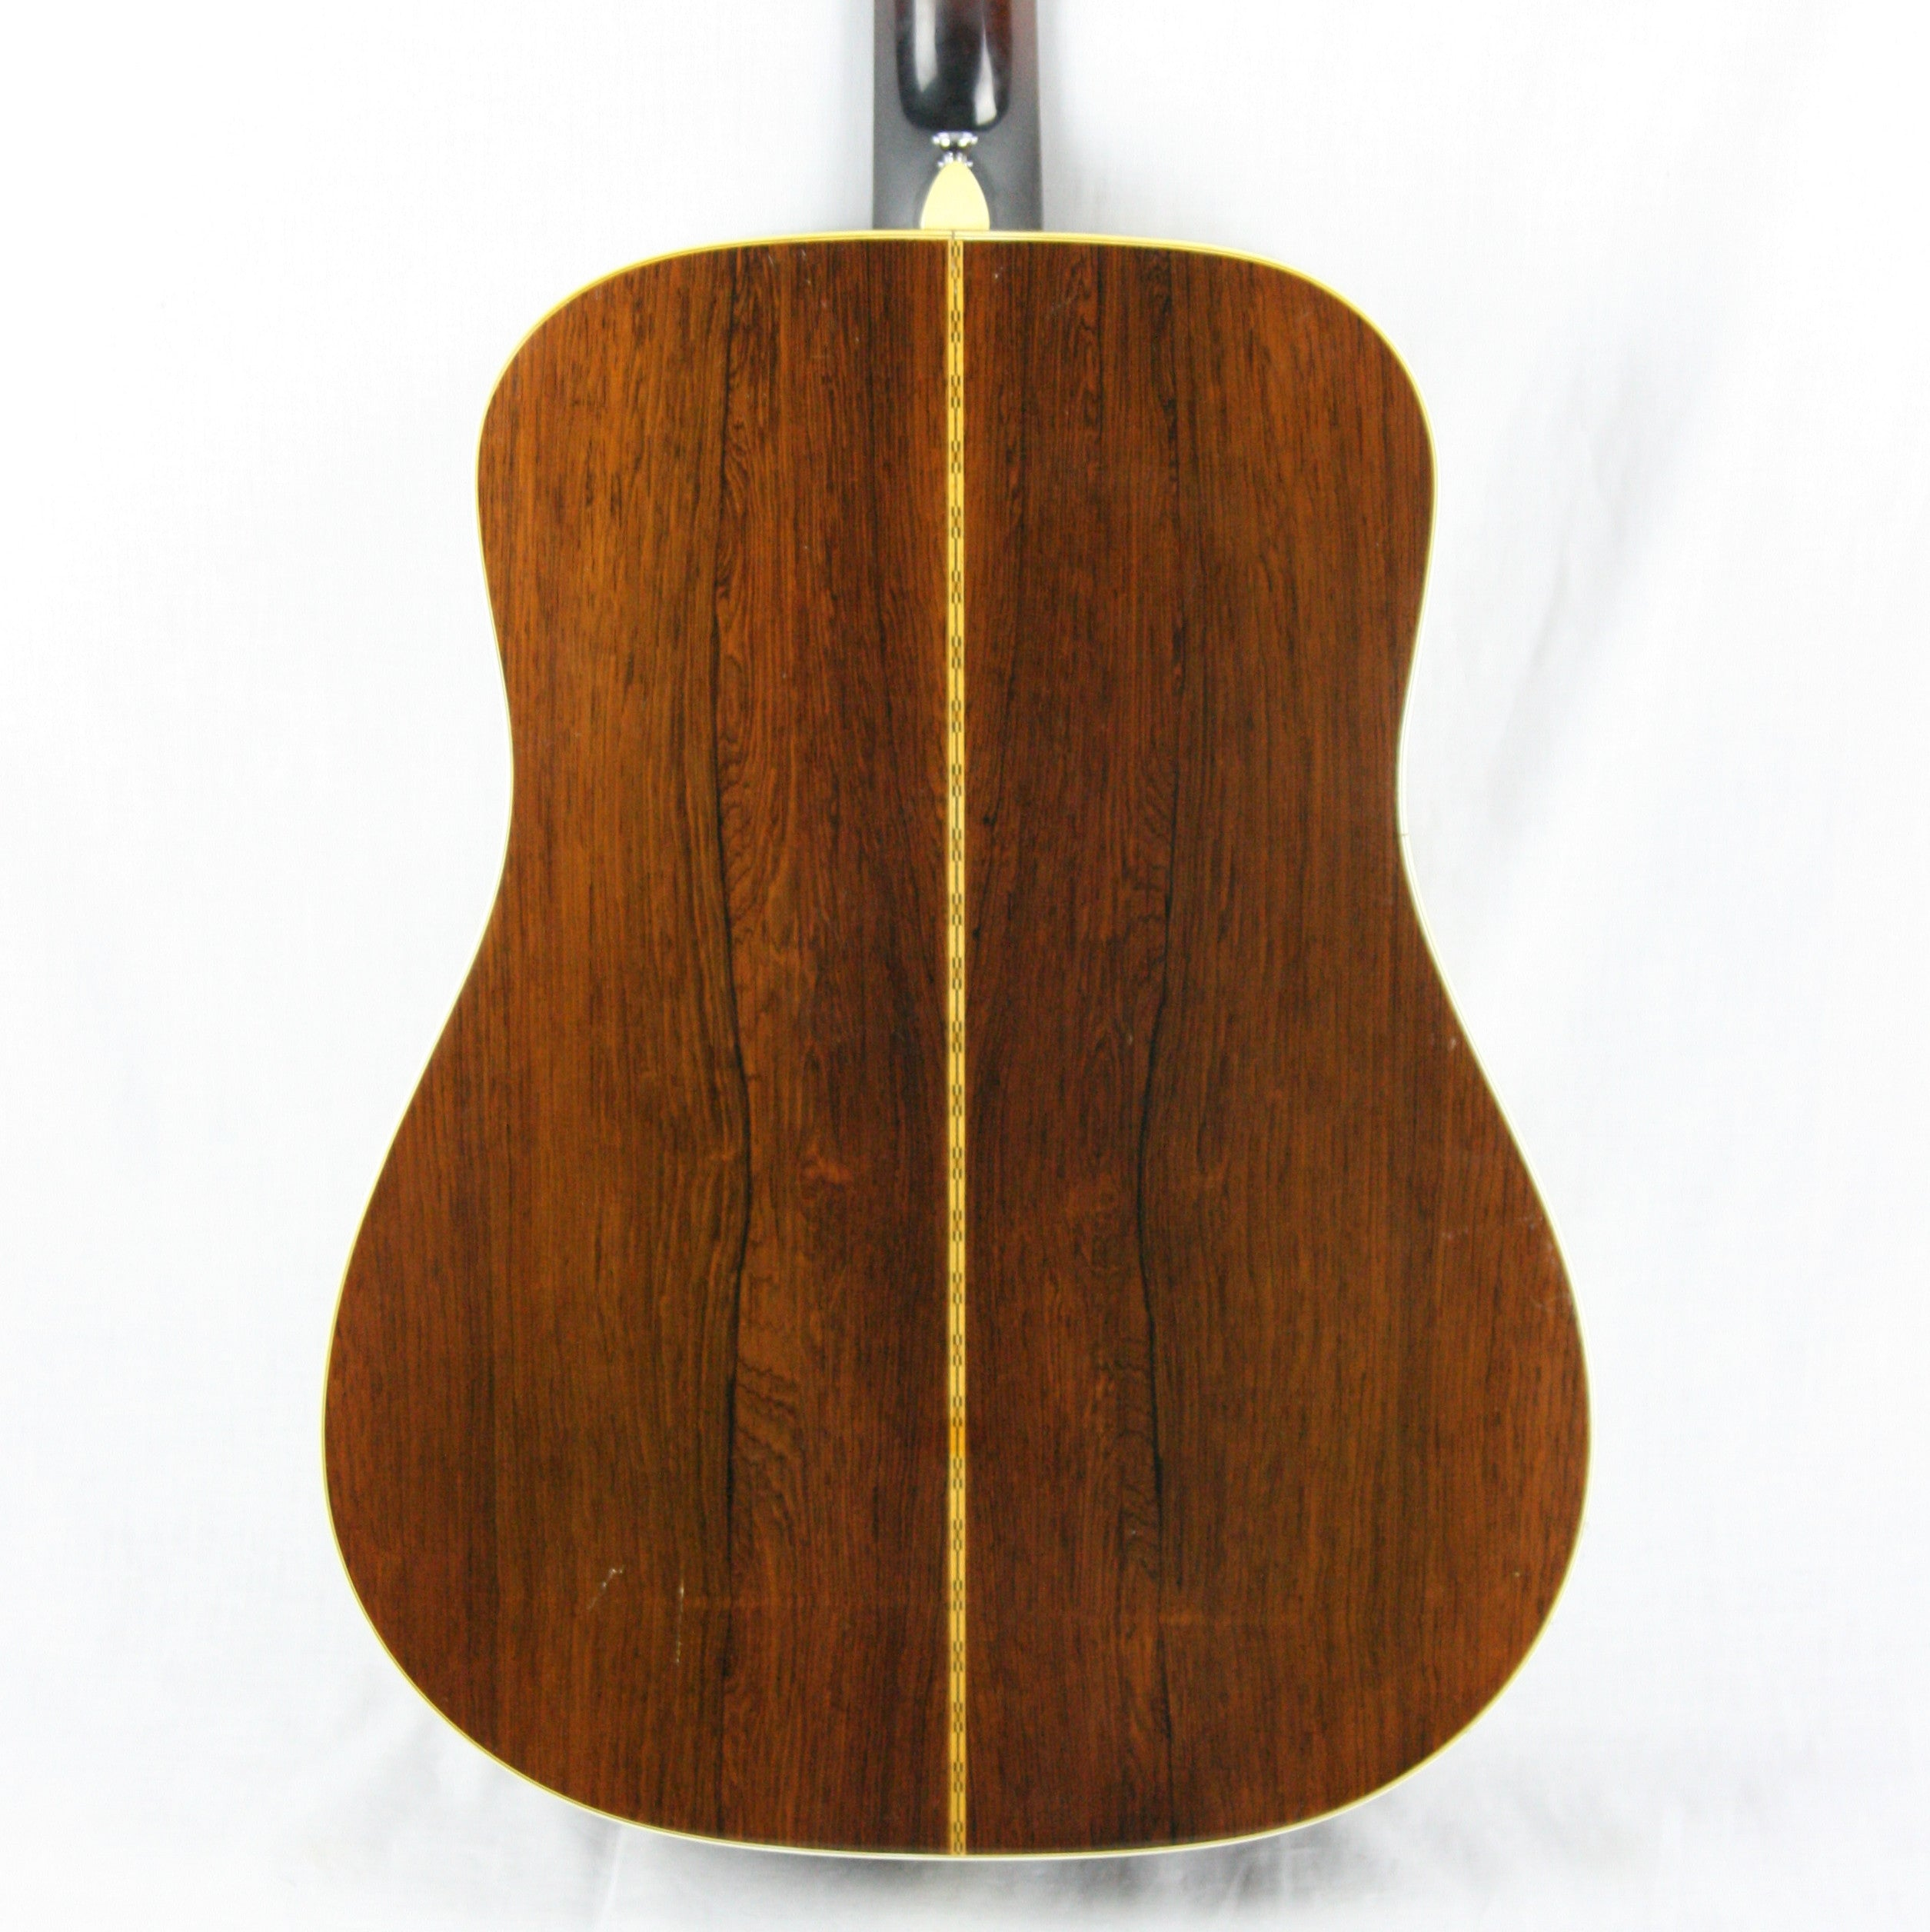 1967 Martin D28 Brazilian Rosewood Dreadnought Acoustic Guitar! Player-Grade 1960's D-28